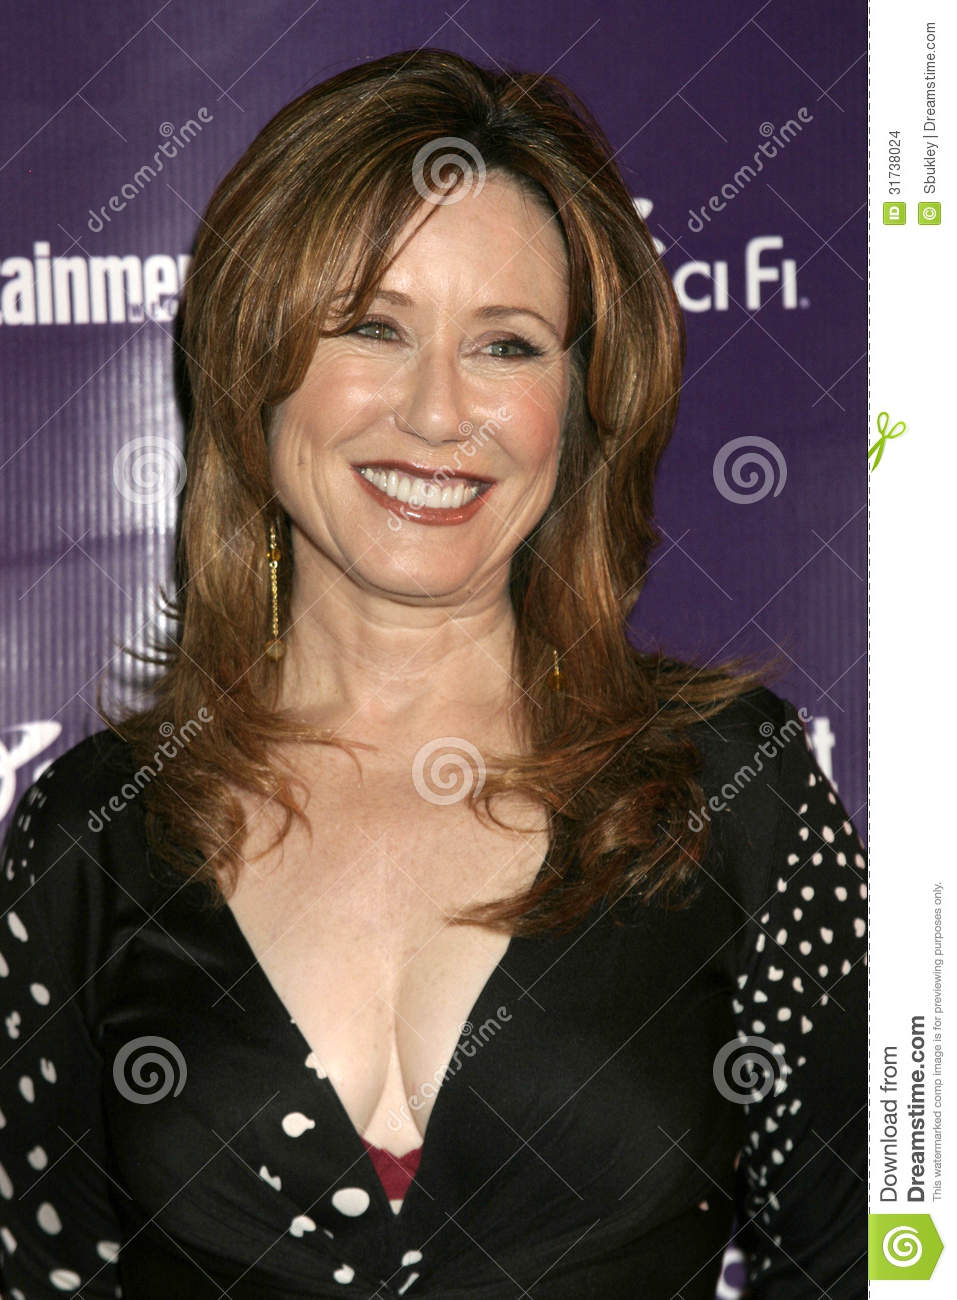 mary mcdonnell dances with wolvesmary mcdonnell imdb, mary mcdonnell daughter, mary mcdonnell er, mary mcdonnell in grey's anatomy, mary mcdonnell michael mell, mary mcdonnell young, mary mcdonnell tumblr, mary mcdonnell twitter, mary mcdonnell 1990, mary mcdonnell instagram, mary mcdonnell foto, mary mcdonnell and edward james olmos, mary mcdonnell young photos, mary mcdonnell, mary mcdonnell dances with wolves, mary mcdonnell penny hardaway, mary mcdonnell 2015, mary mcdonnell biography, mary mcdonnell battlestar galactica, mary mcdonnell dances with wolves photos